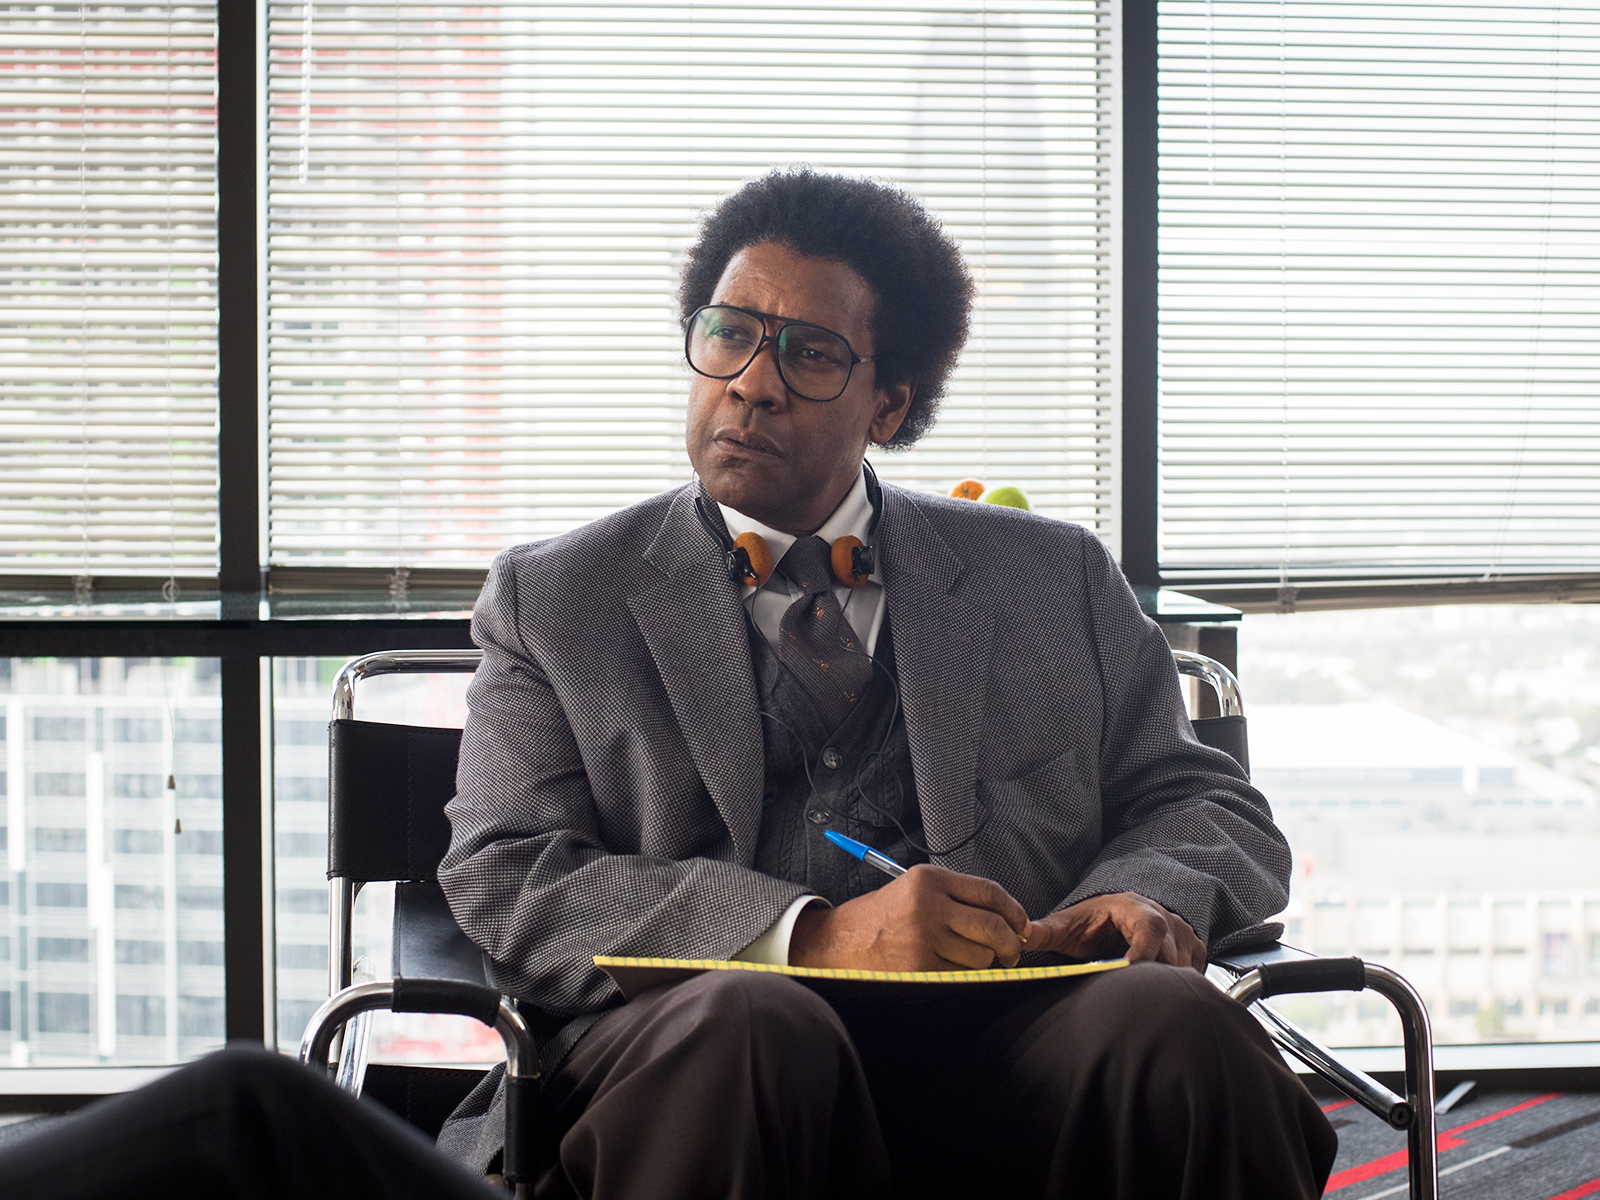 denzel washington in roman j israel esq movie by sony pictures